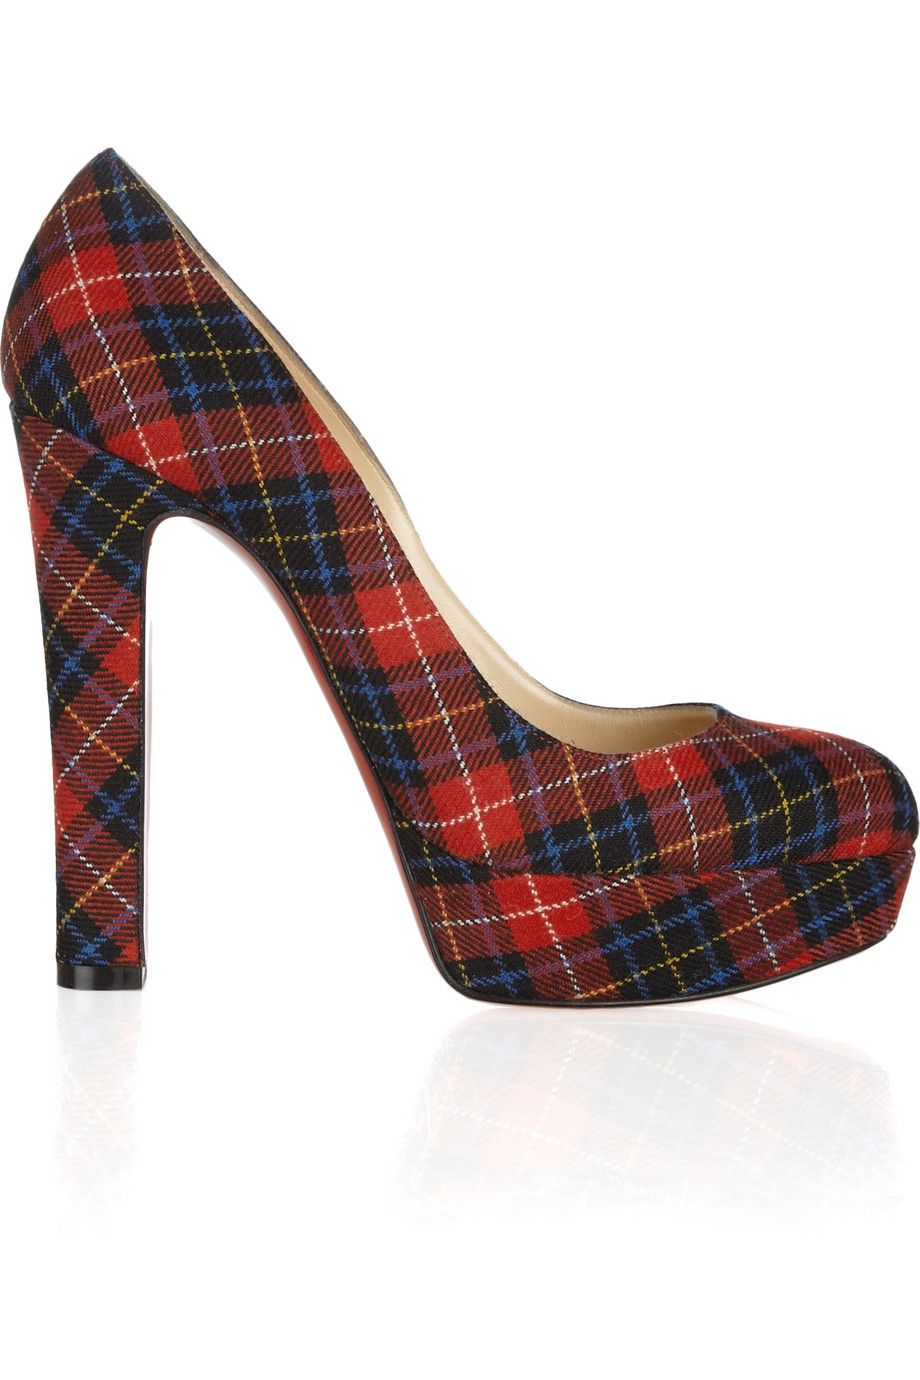 63aa6c11c7a Christian Louboutin tartan pumps. I would do unspeakable things to get  these on my feet.